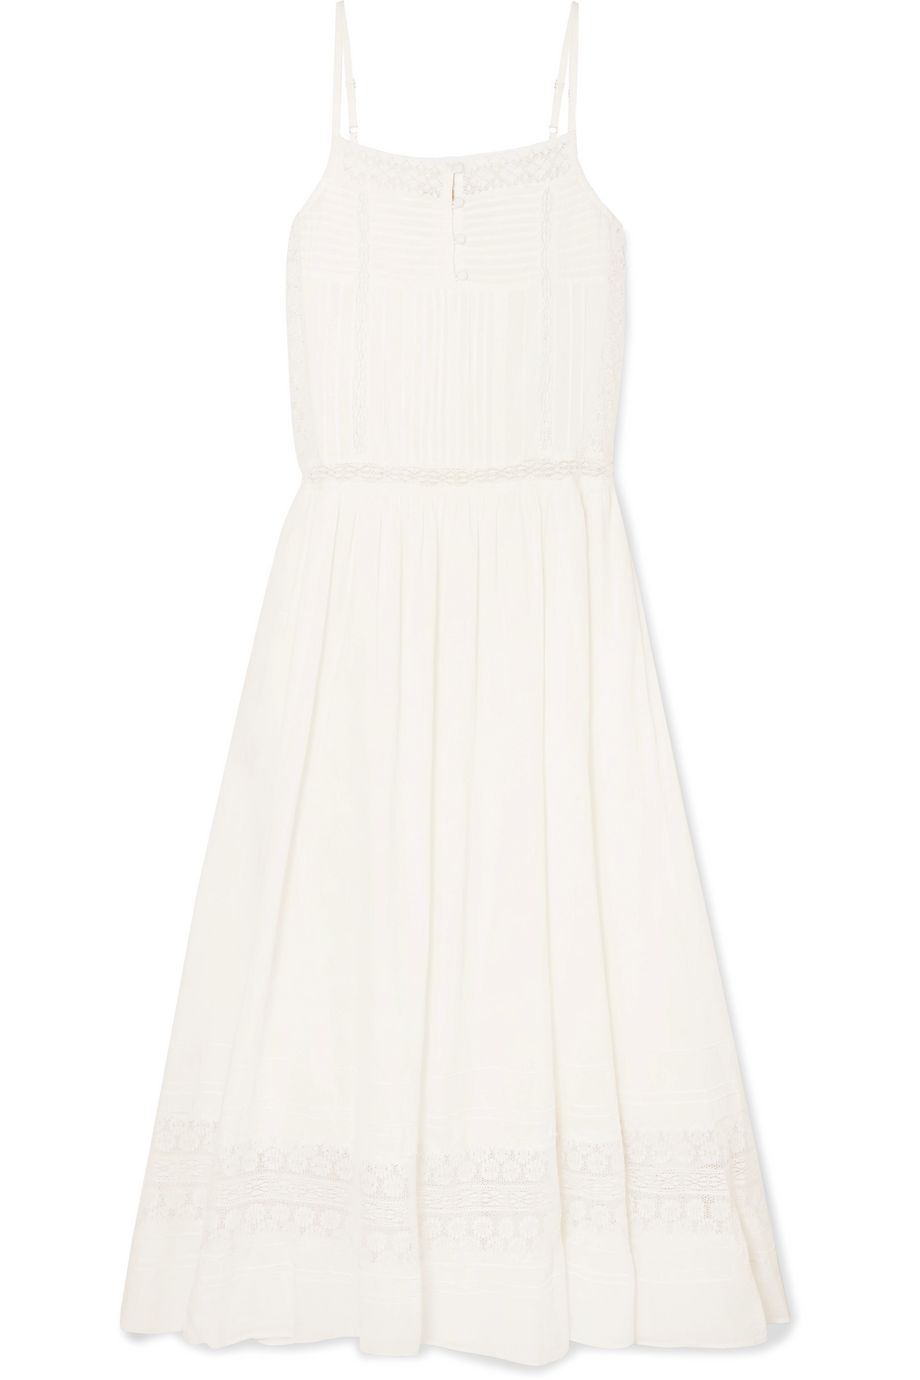 Vanessa Bruno Lali lace-paneled cotton-voile midi dress